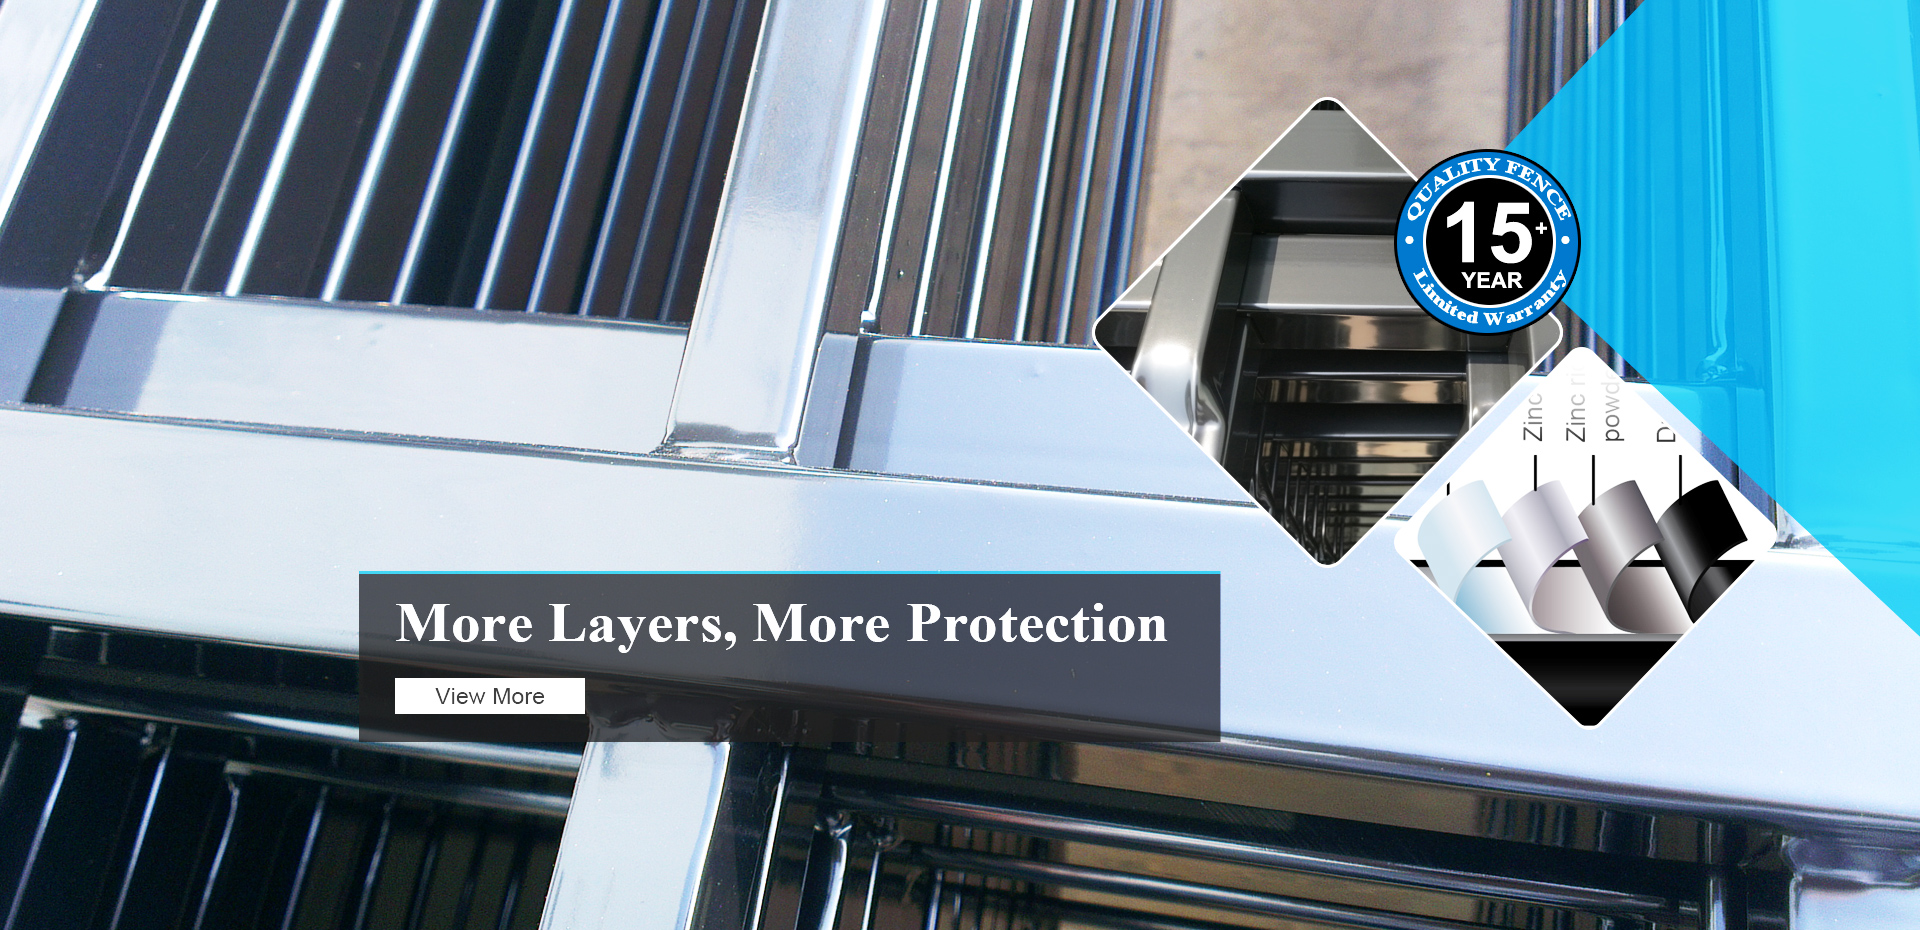 More Layers, More Protection